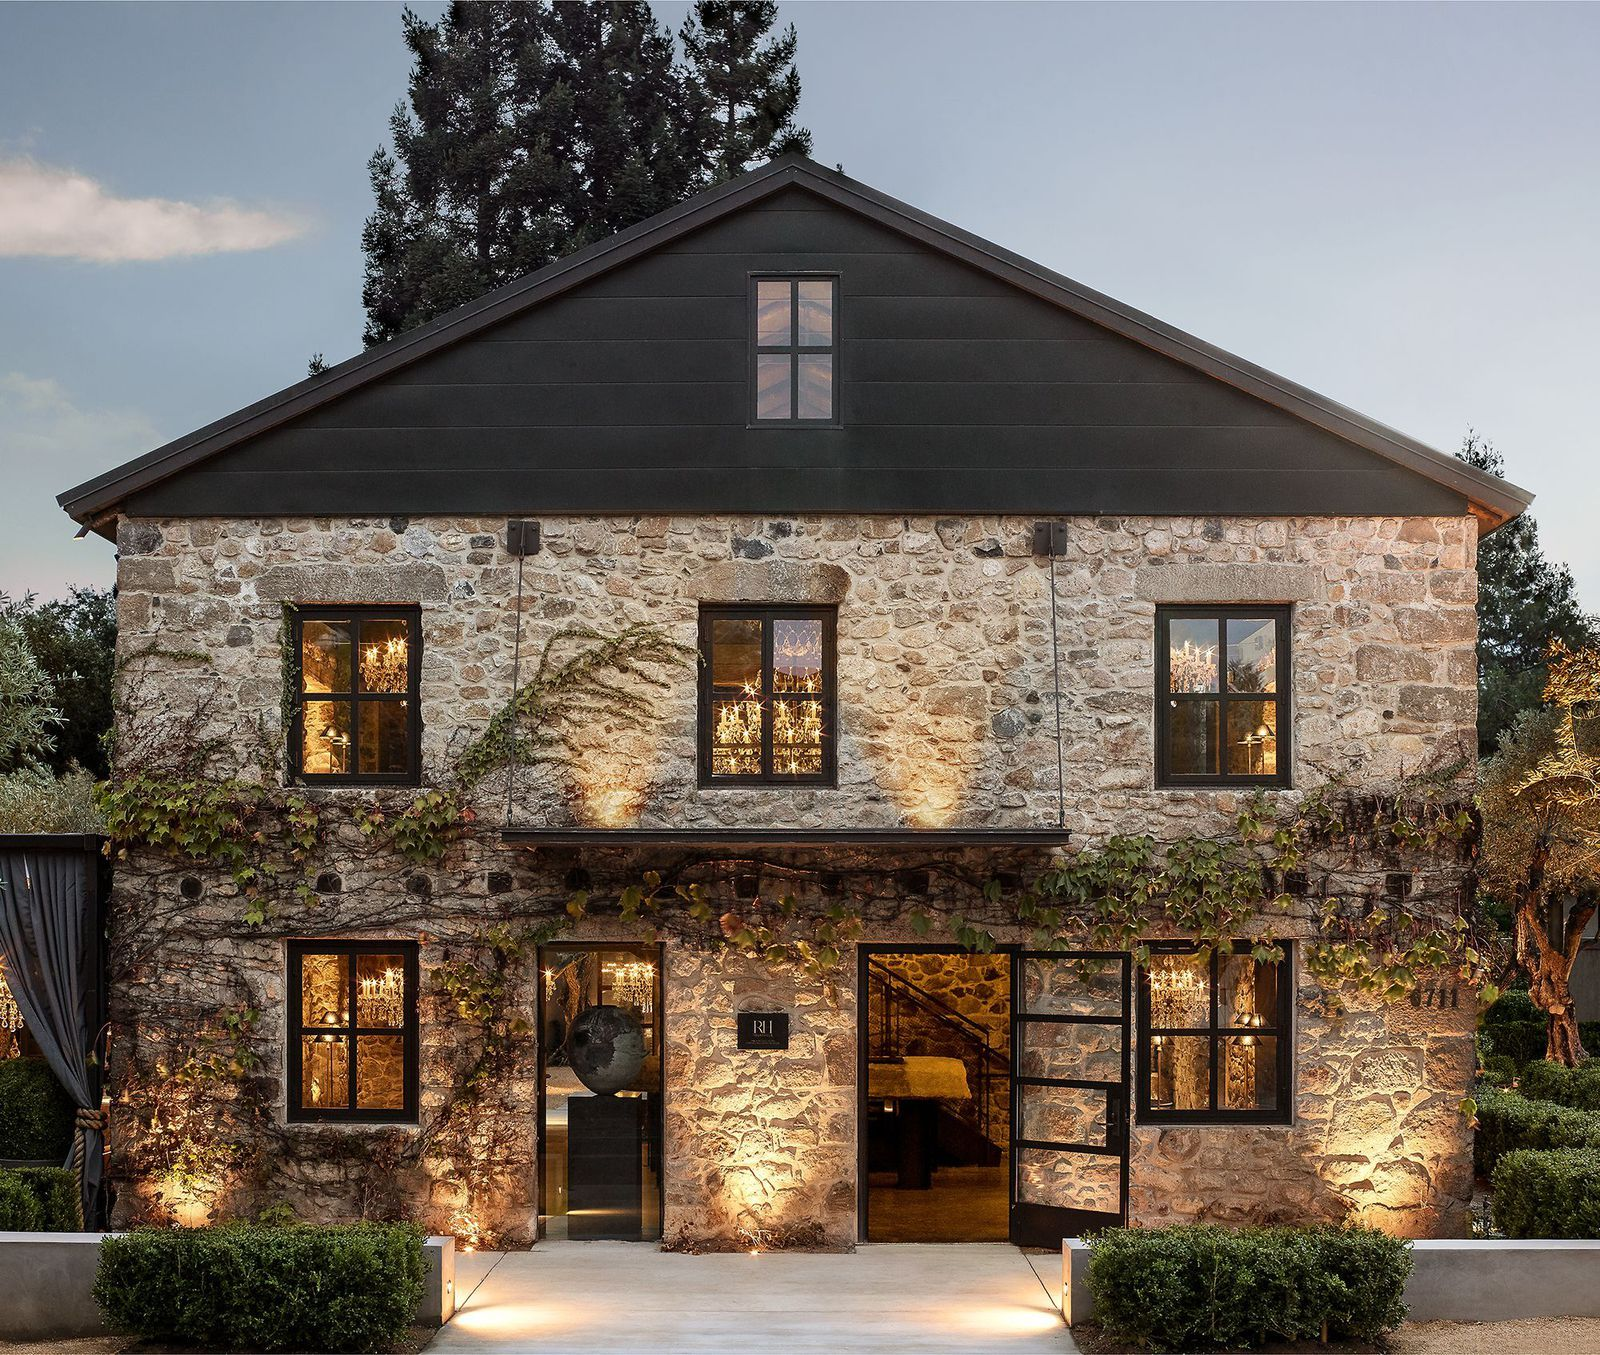 You Can Shop And Have A Glass Of Wine At Restoration Hardware S New California Compound House Designs Exterior House Design Exterior Design